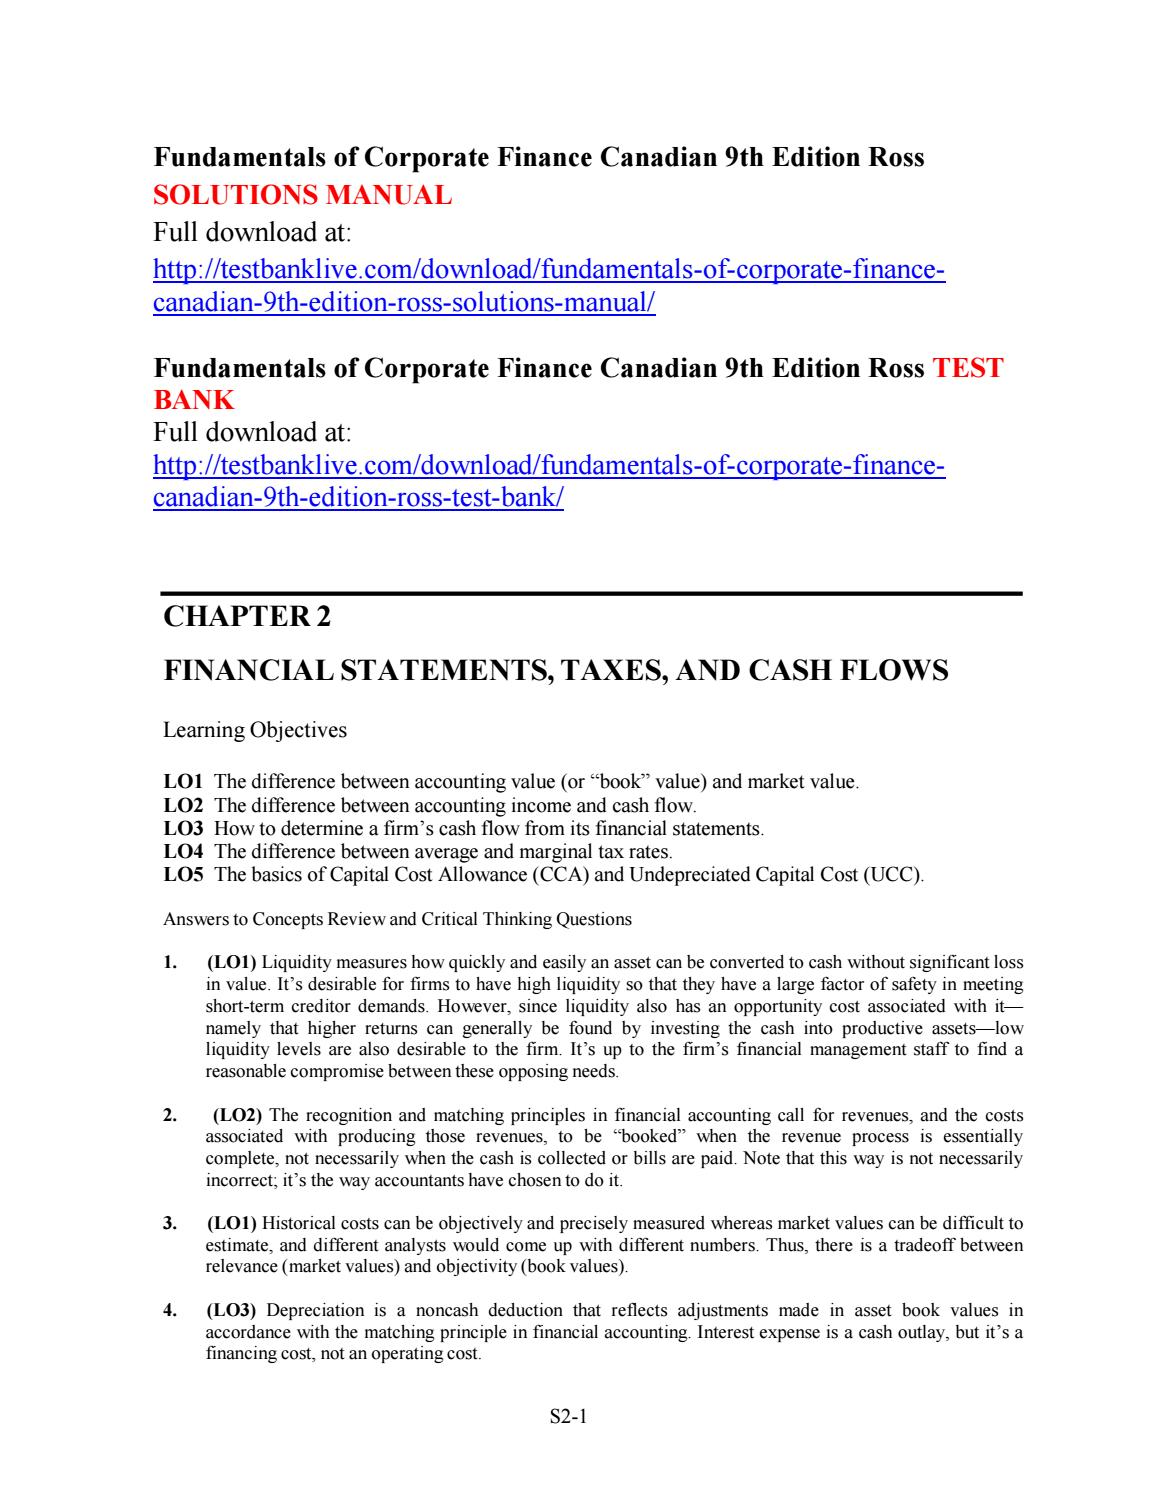 Fundamentals of corporate finance canadian 9th edition ross solutions manual  by Demented - issuu